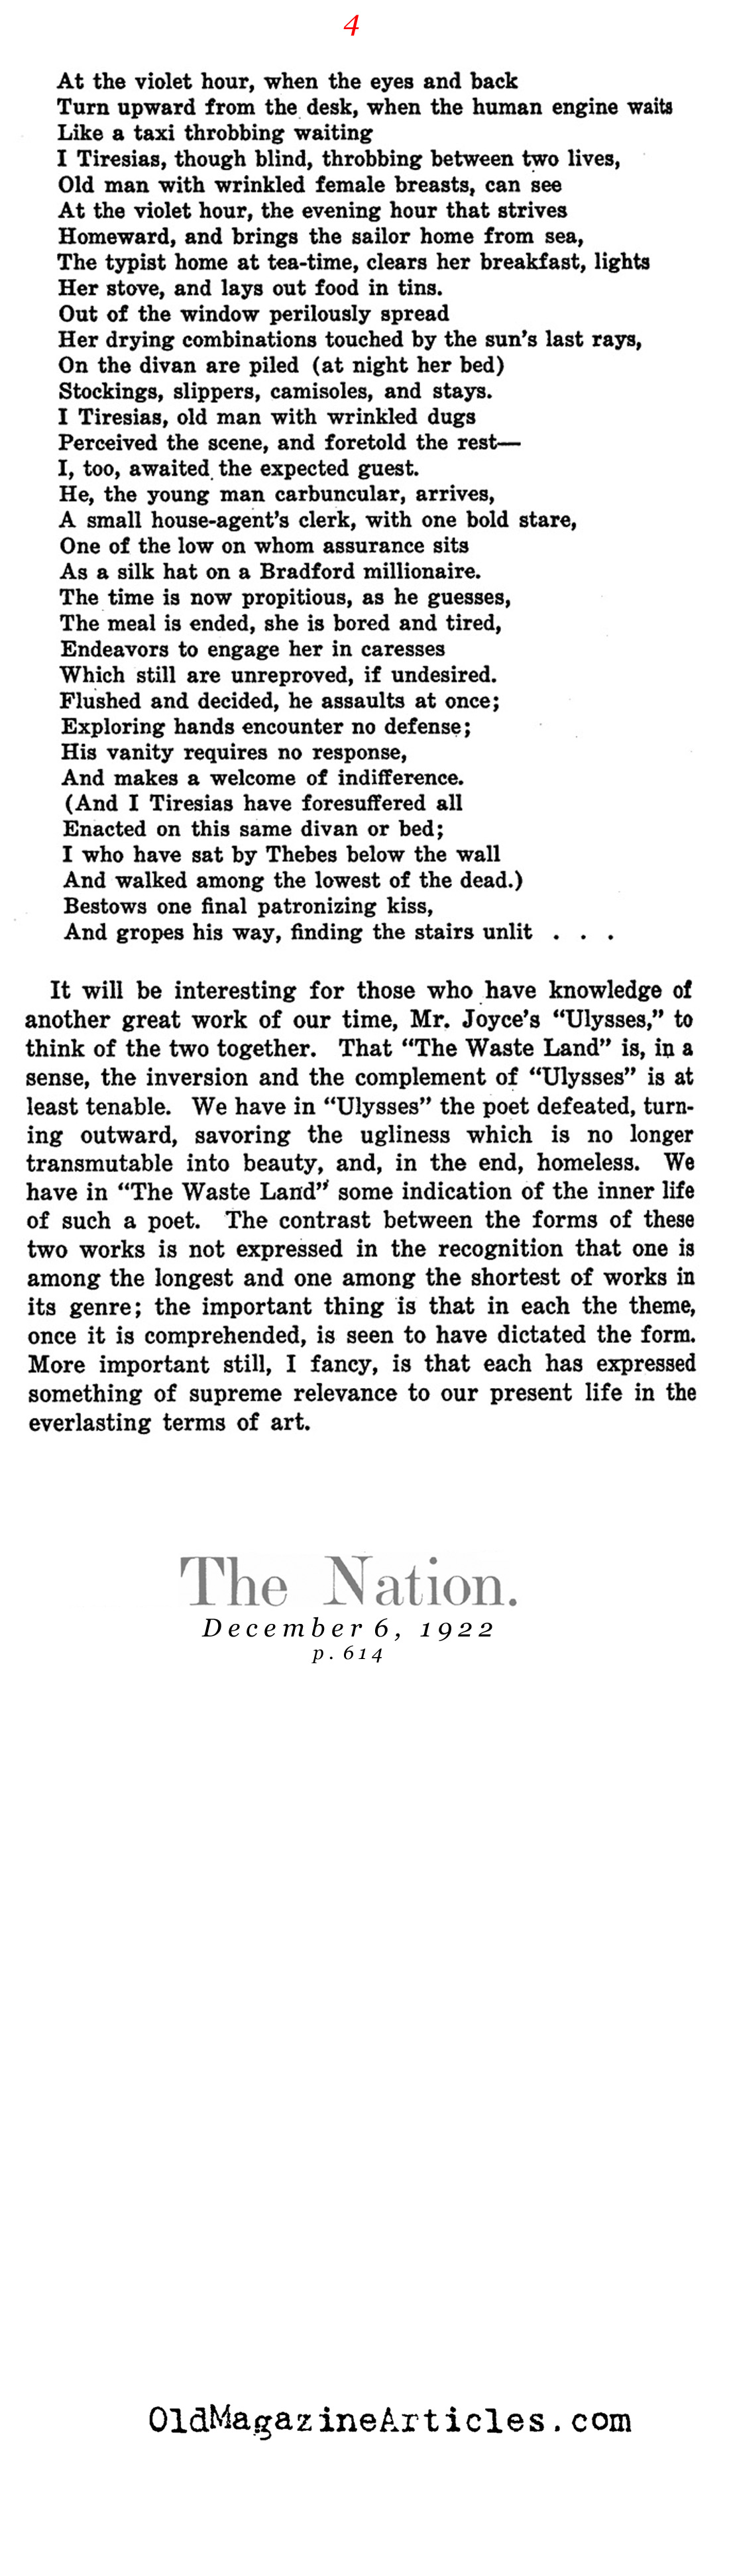 Reviewed: The Waste Land (The Nation, 1922)